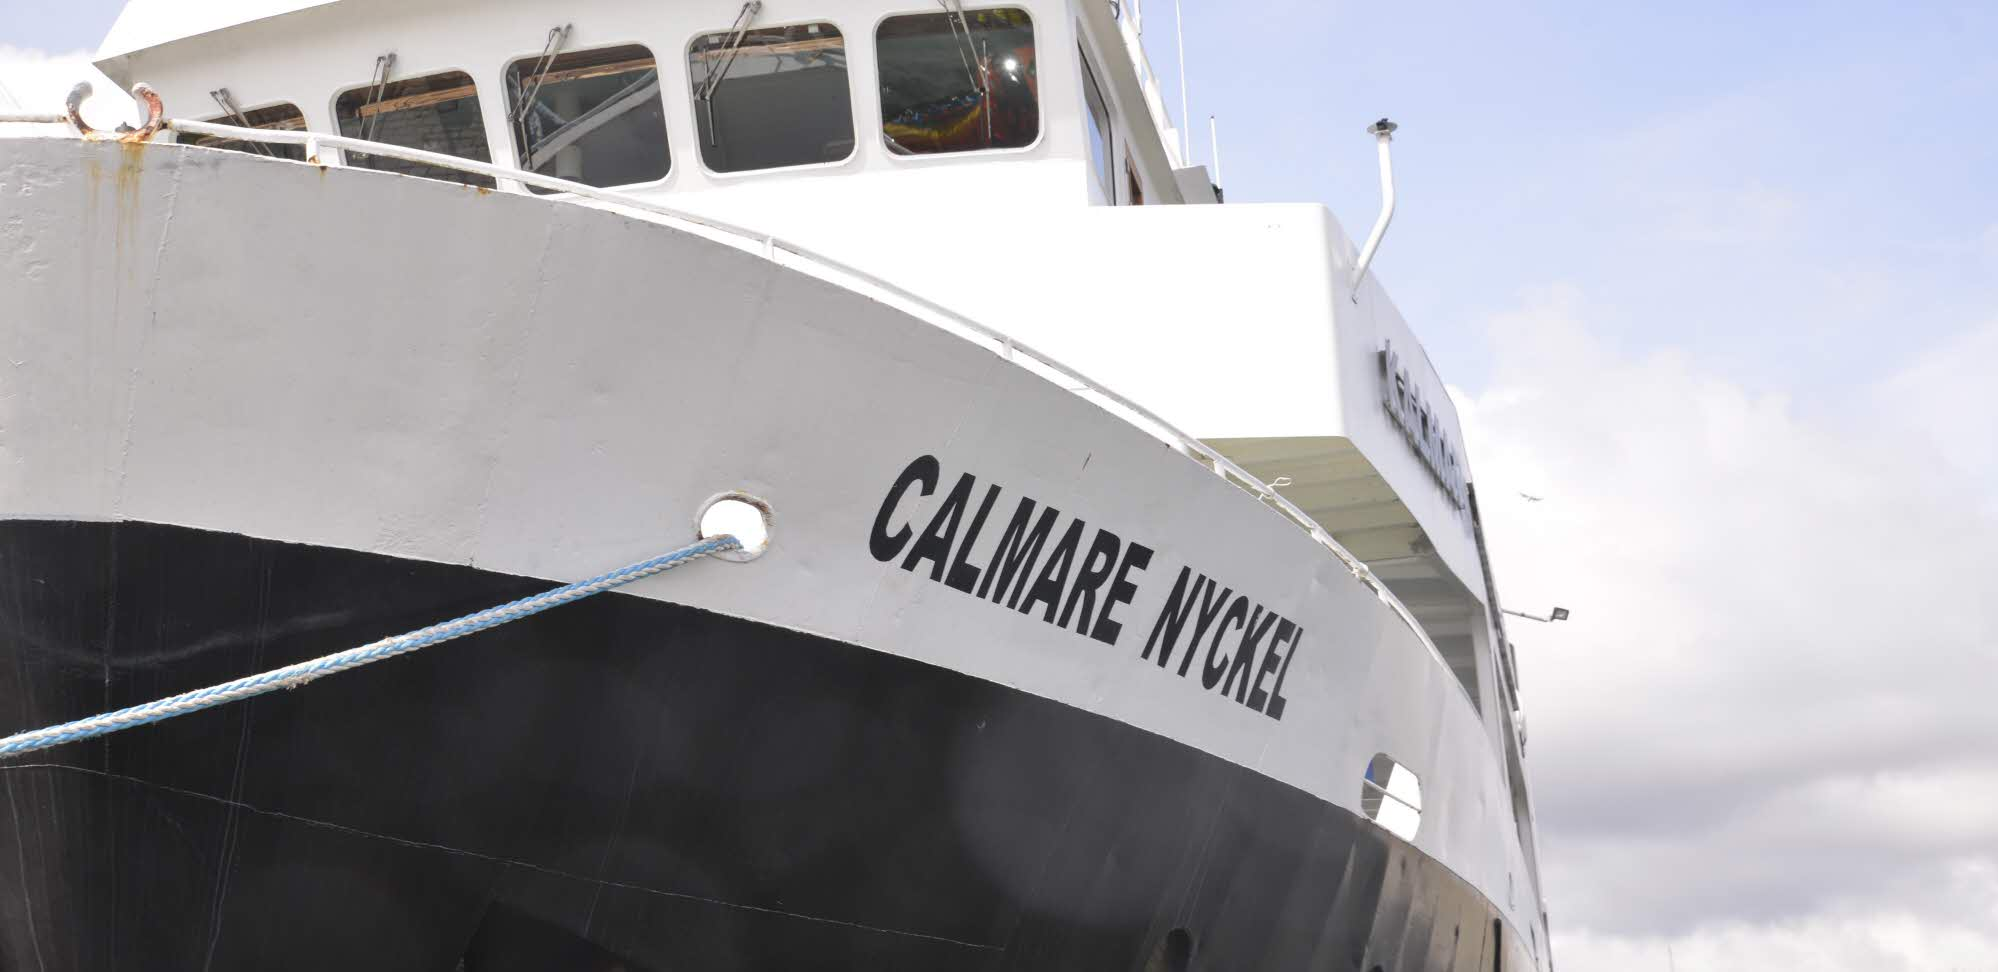 The Calmare Nyckel ship